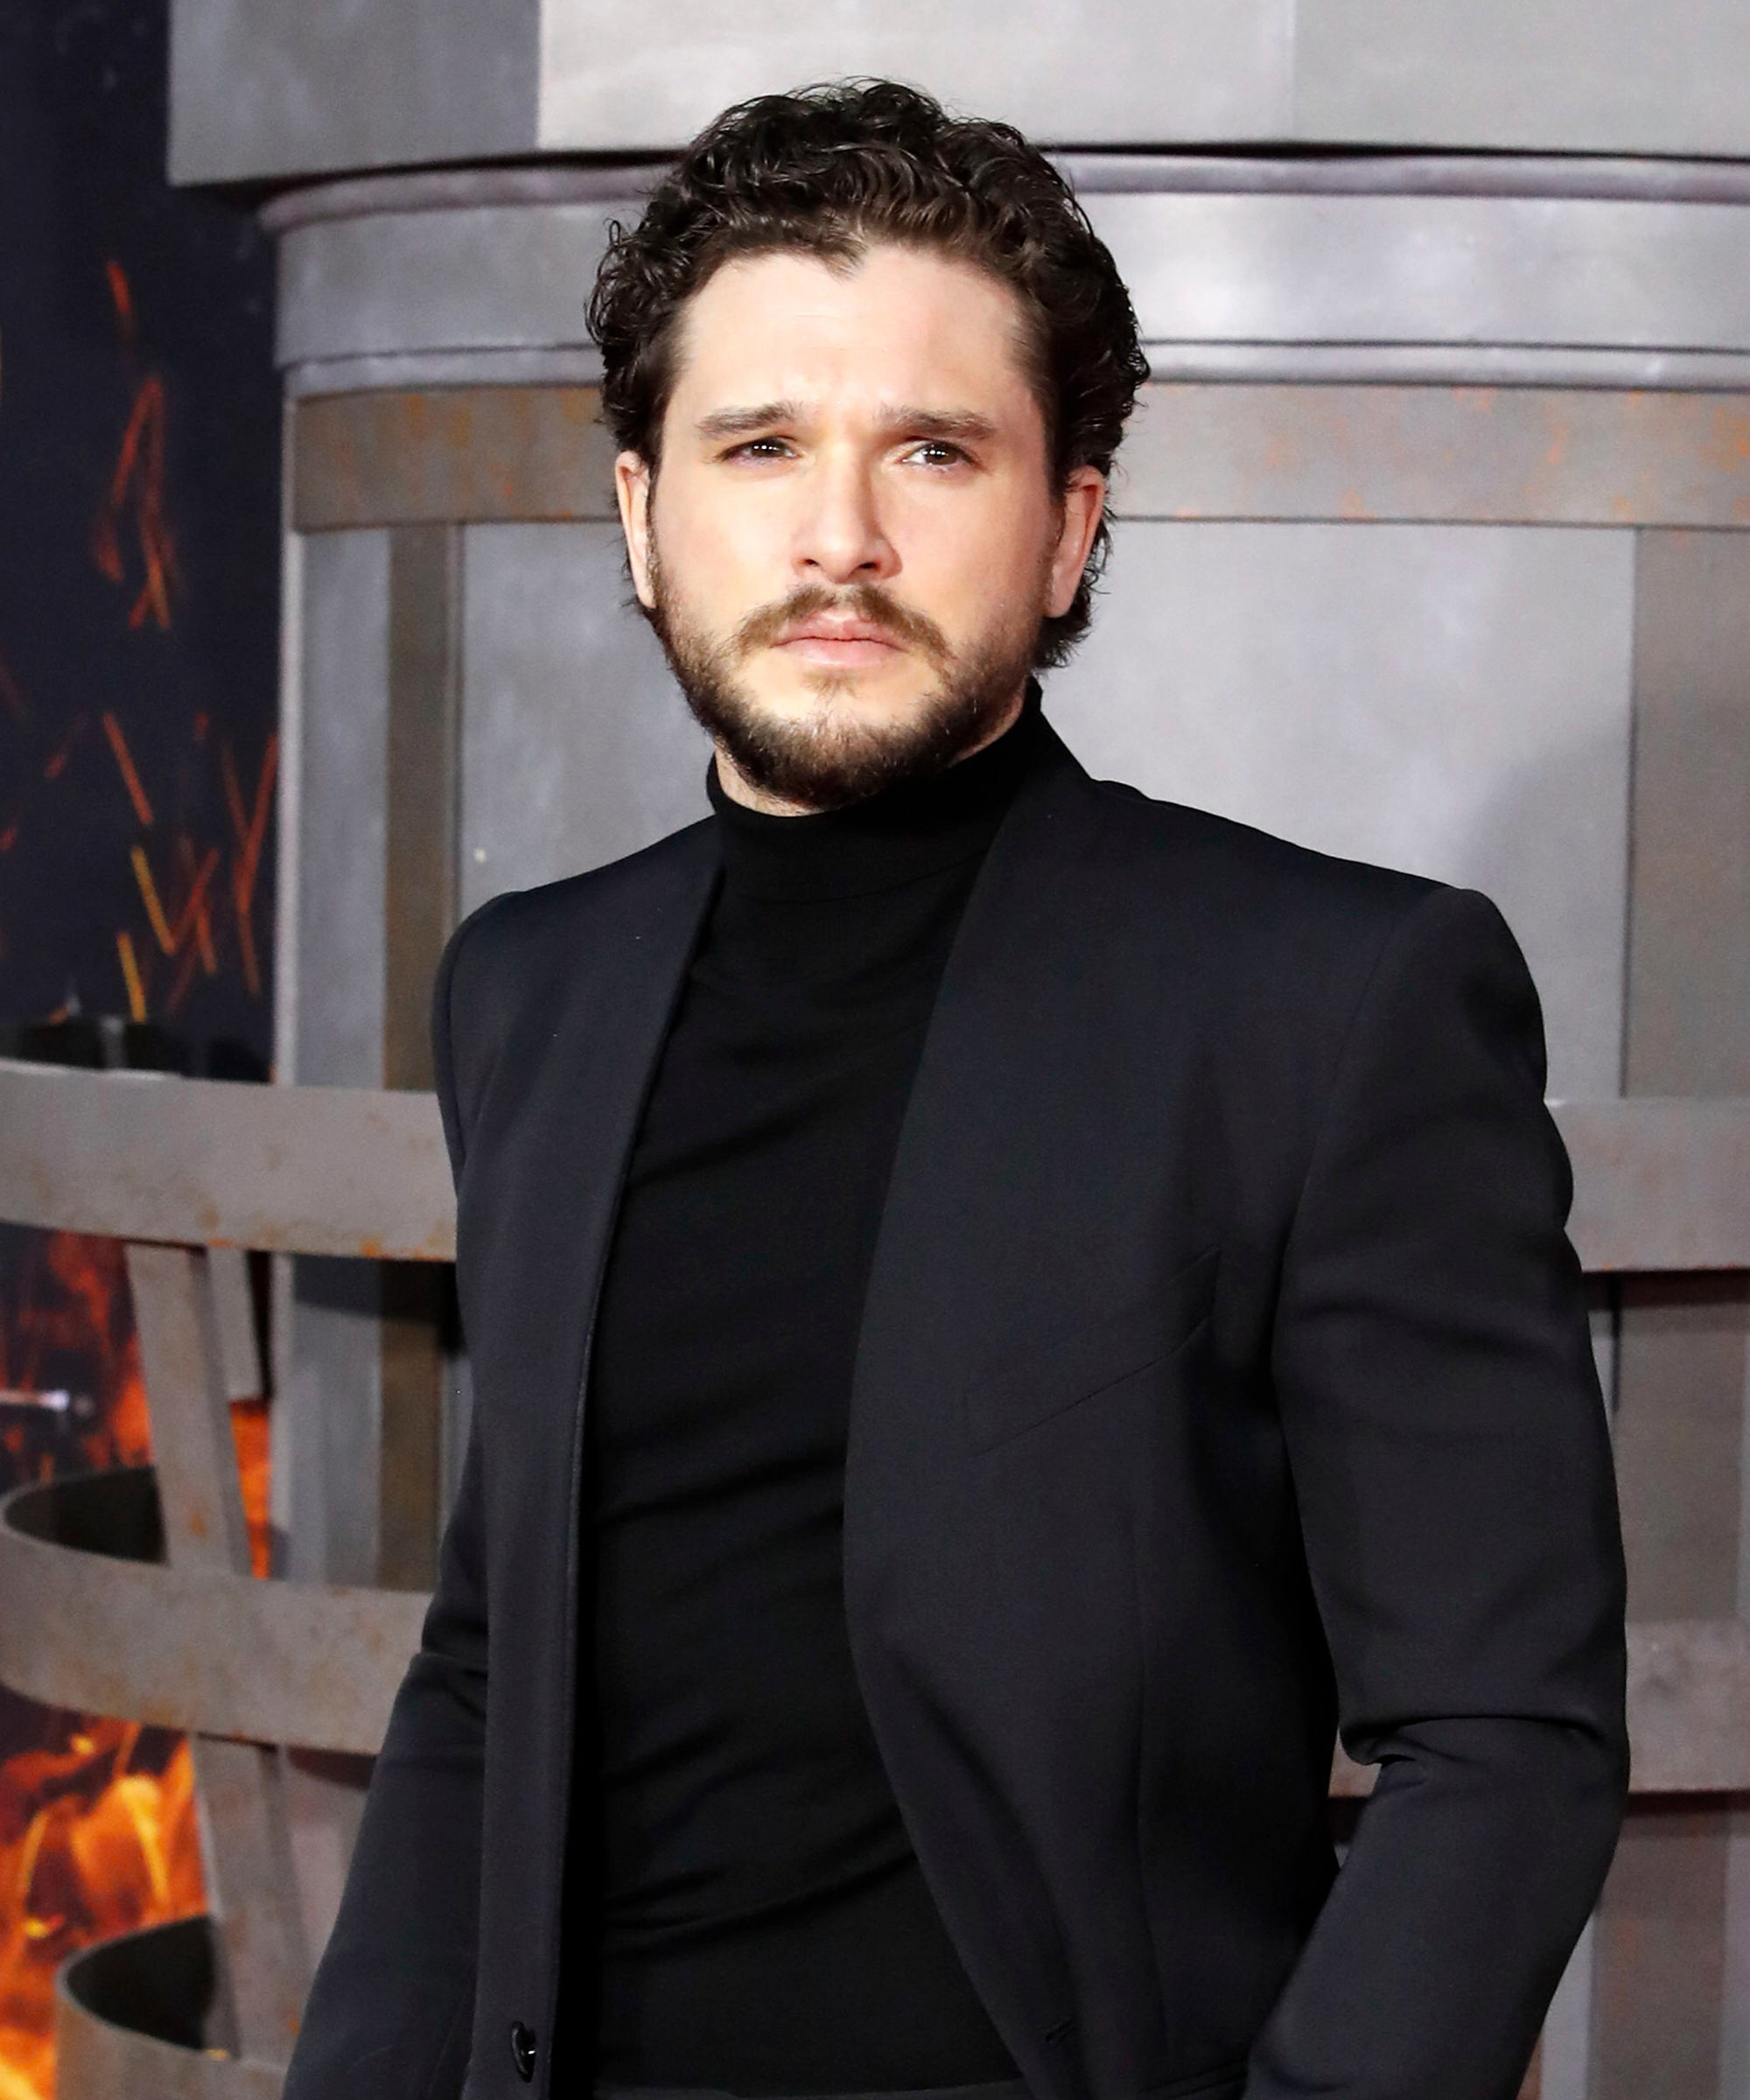 """Kit Harington Calls Himself A """"Loner Throner"""" After Game Of Thrones Snubs"""